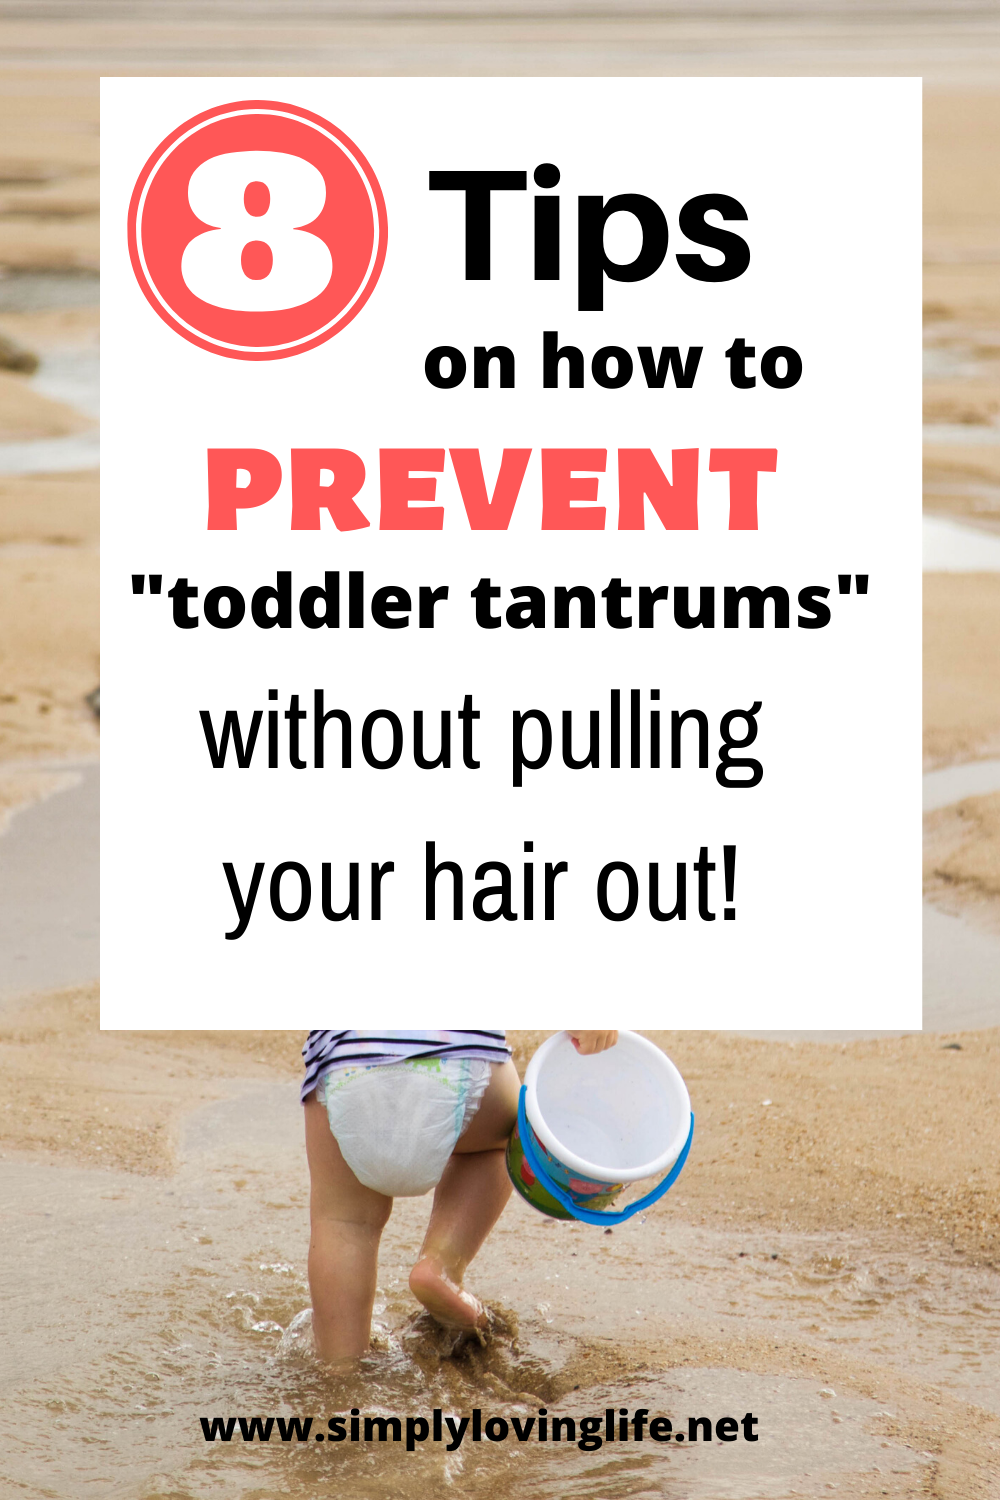 Being a toddler mom is hard work! Here are 8 tips that have significantly helped me with my toddler. Whether you are a working mom or a stay at home mom. All toddler moms need help with toddler tantrums. Anything to help handle, minimize, prevent is great! #toddler #toddlerlife #toddlertantrum #toddlermom